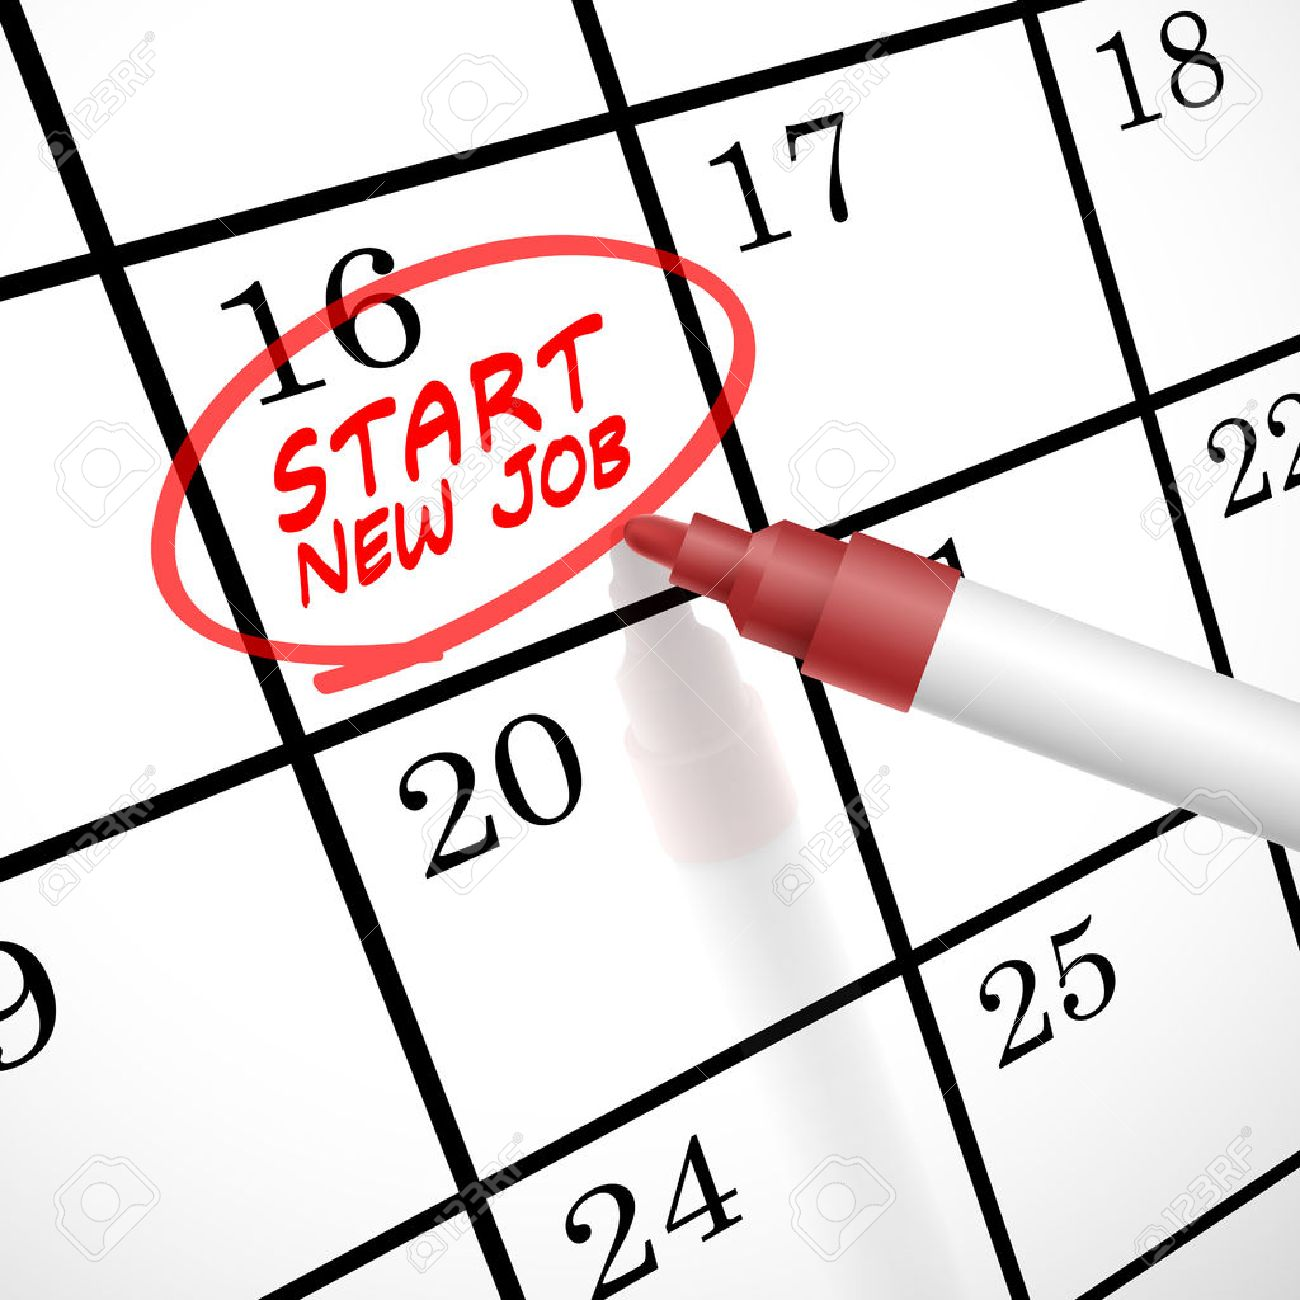 Start New Job Words Circle Marked On A Calendar By A Red Pen ...